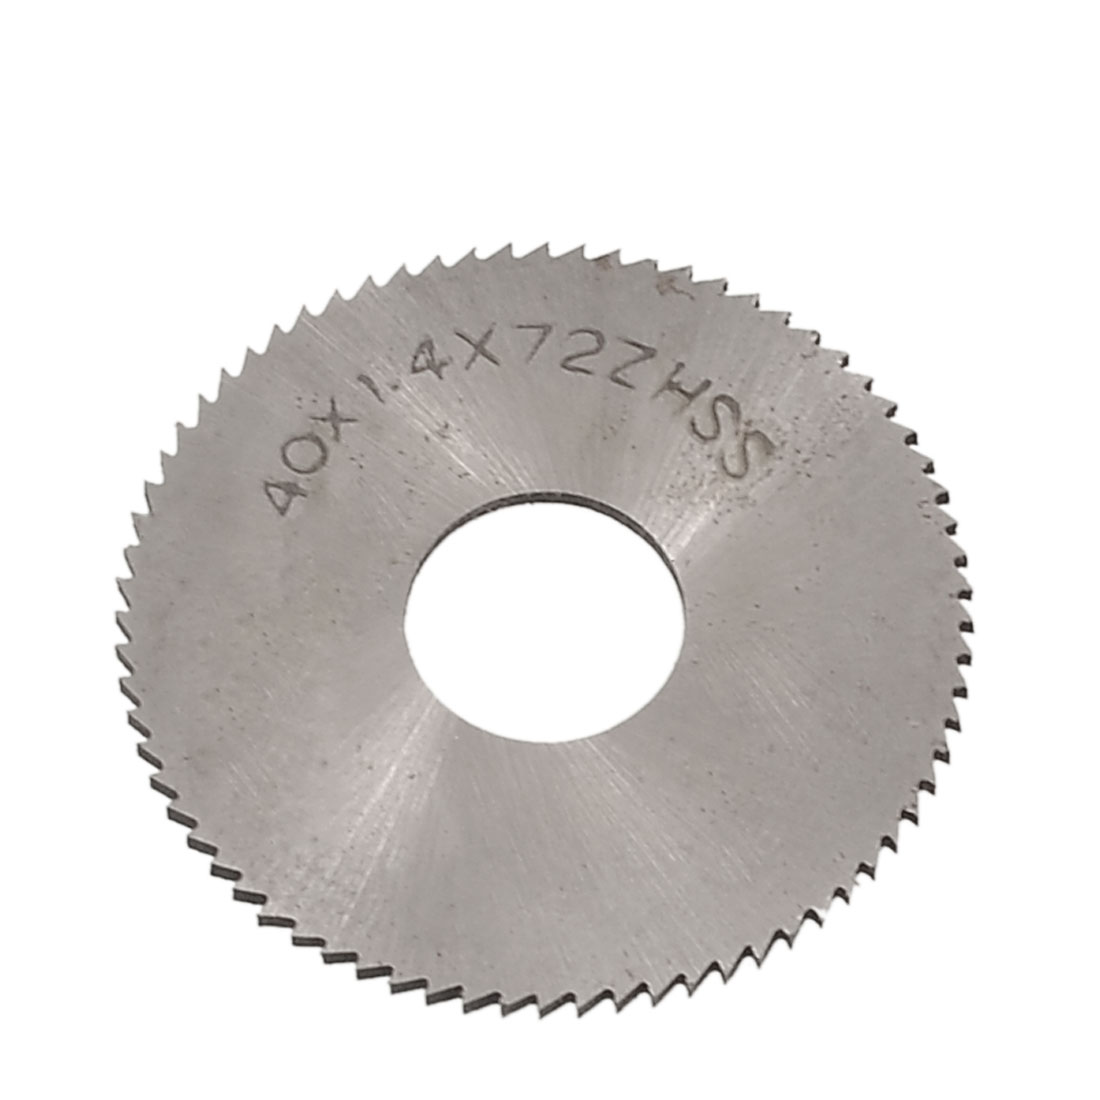 Silver Tone HSS 40mm x 1.4mm x 13mm 72T Slitting Saw